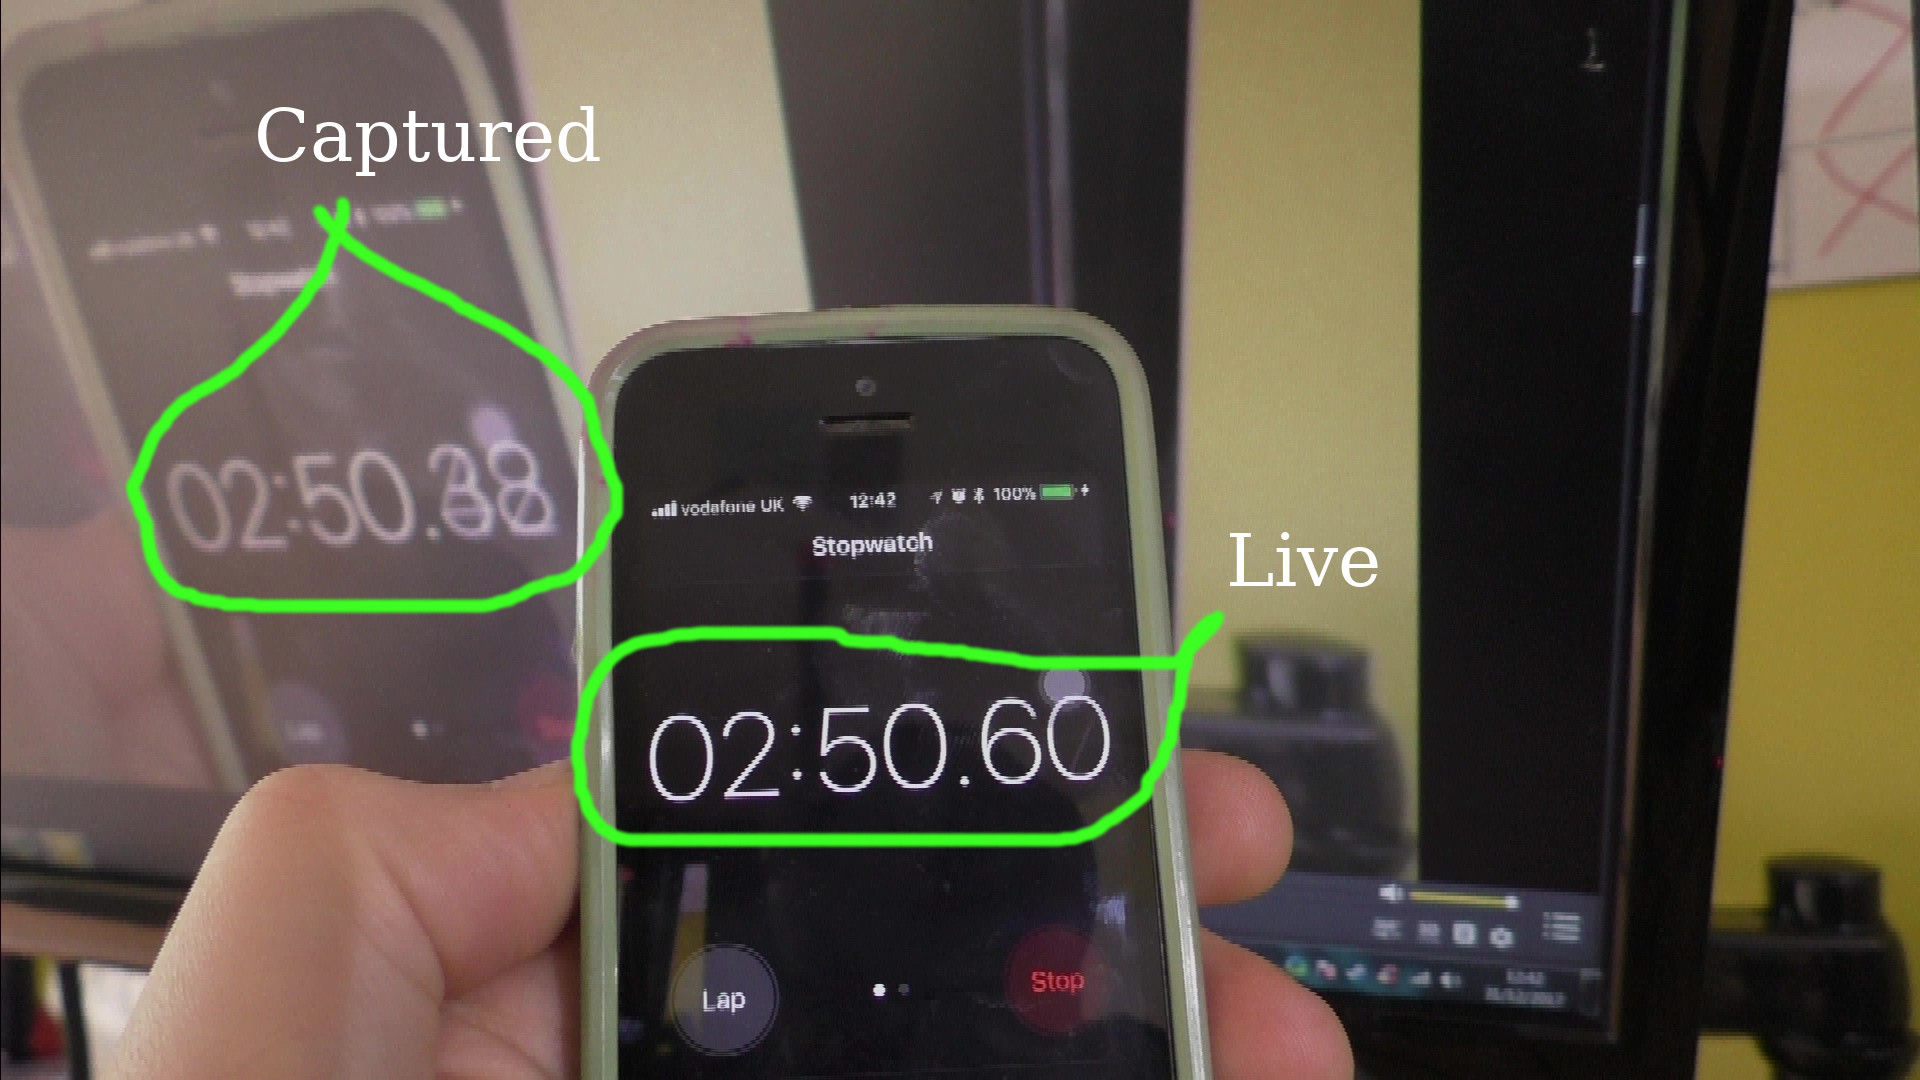 image of phone stop watch app and the captured feed. Showing Windows 7 latency is around 200ms